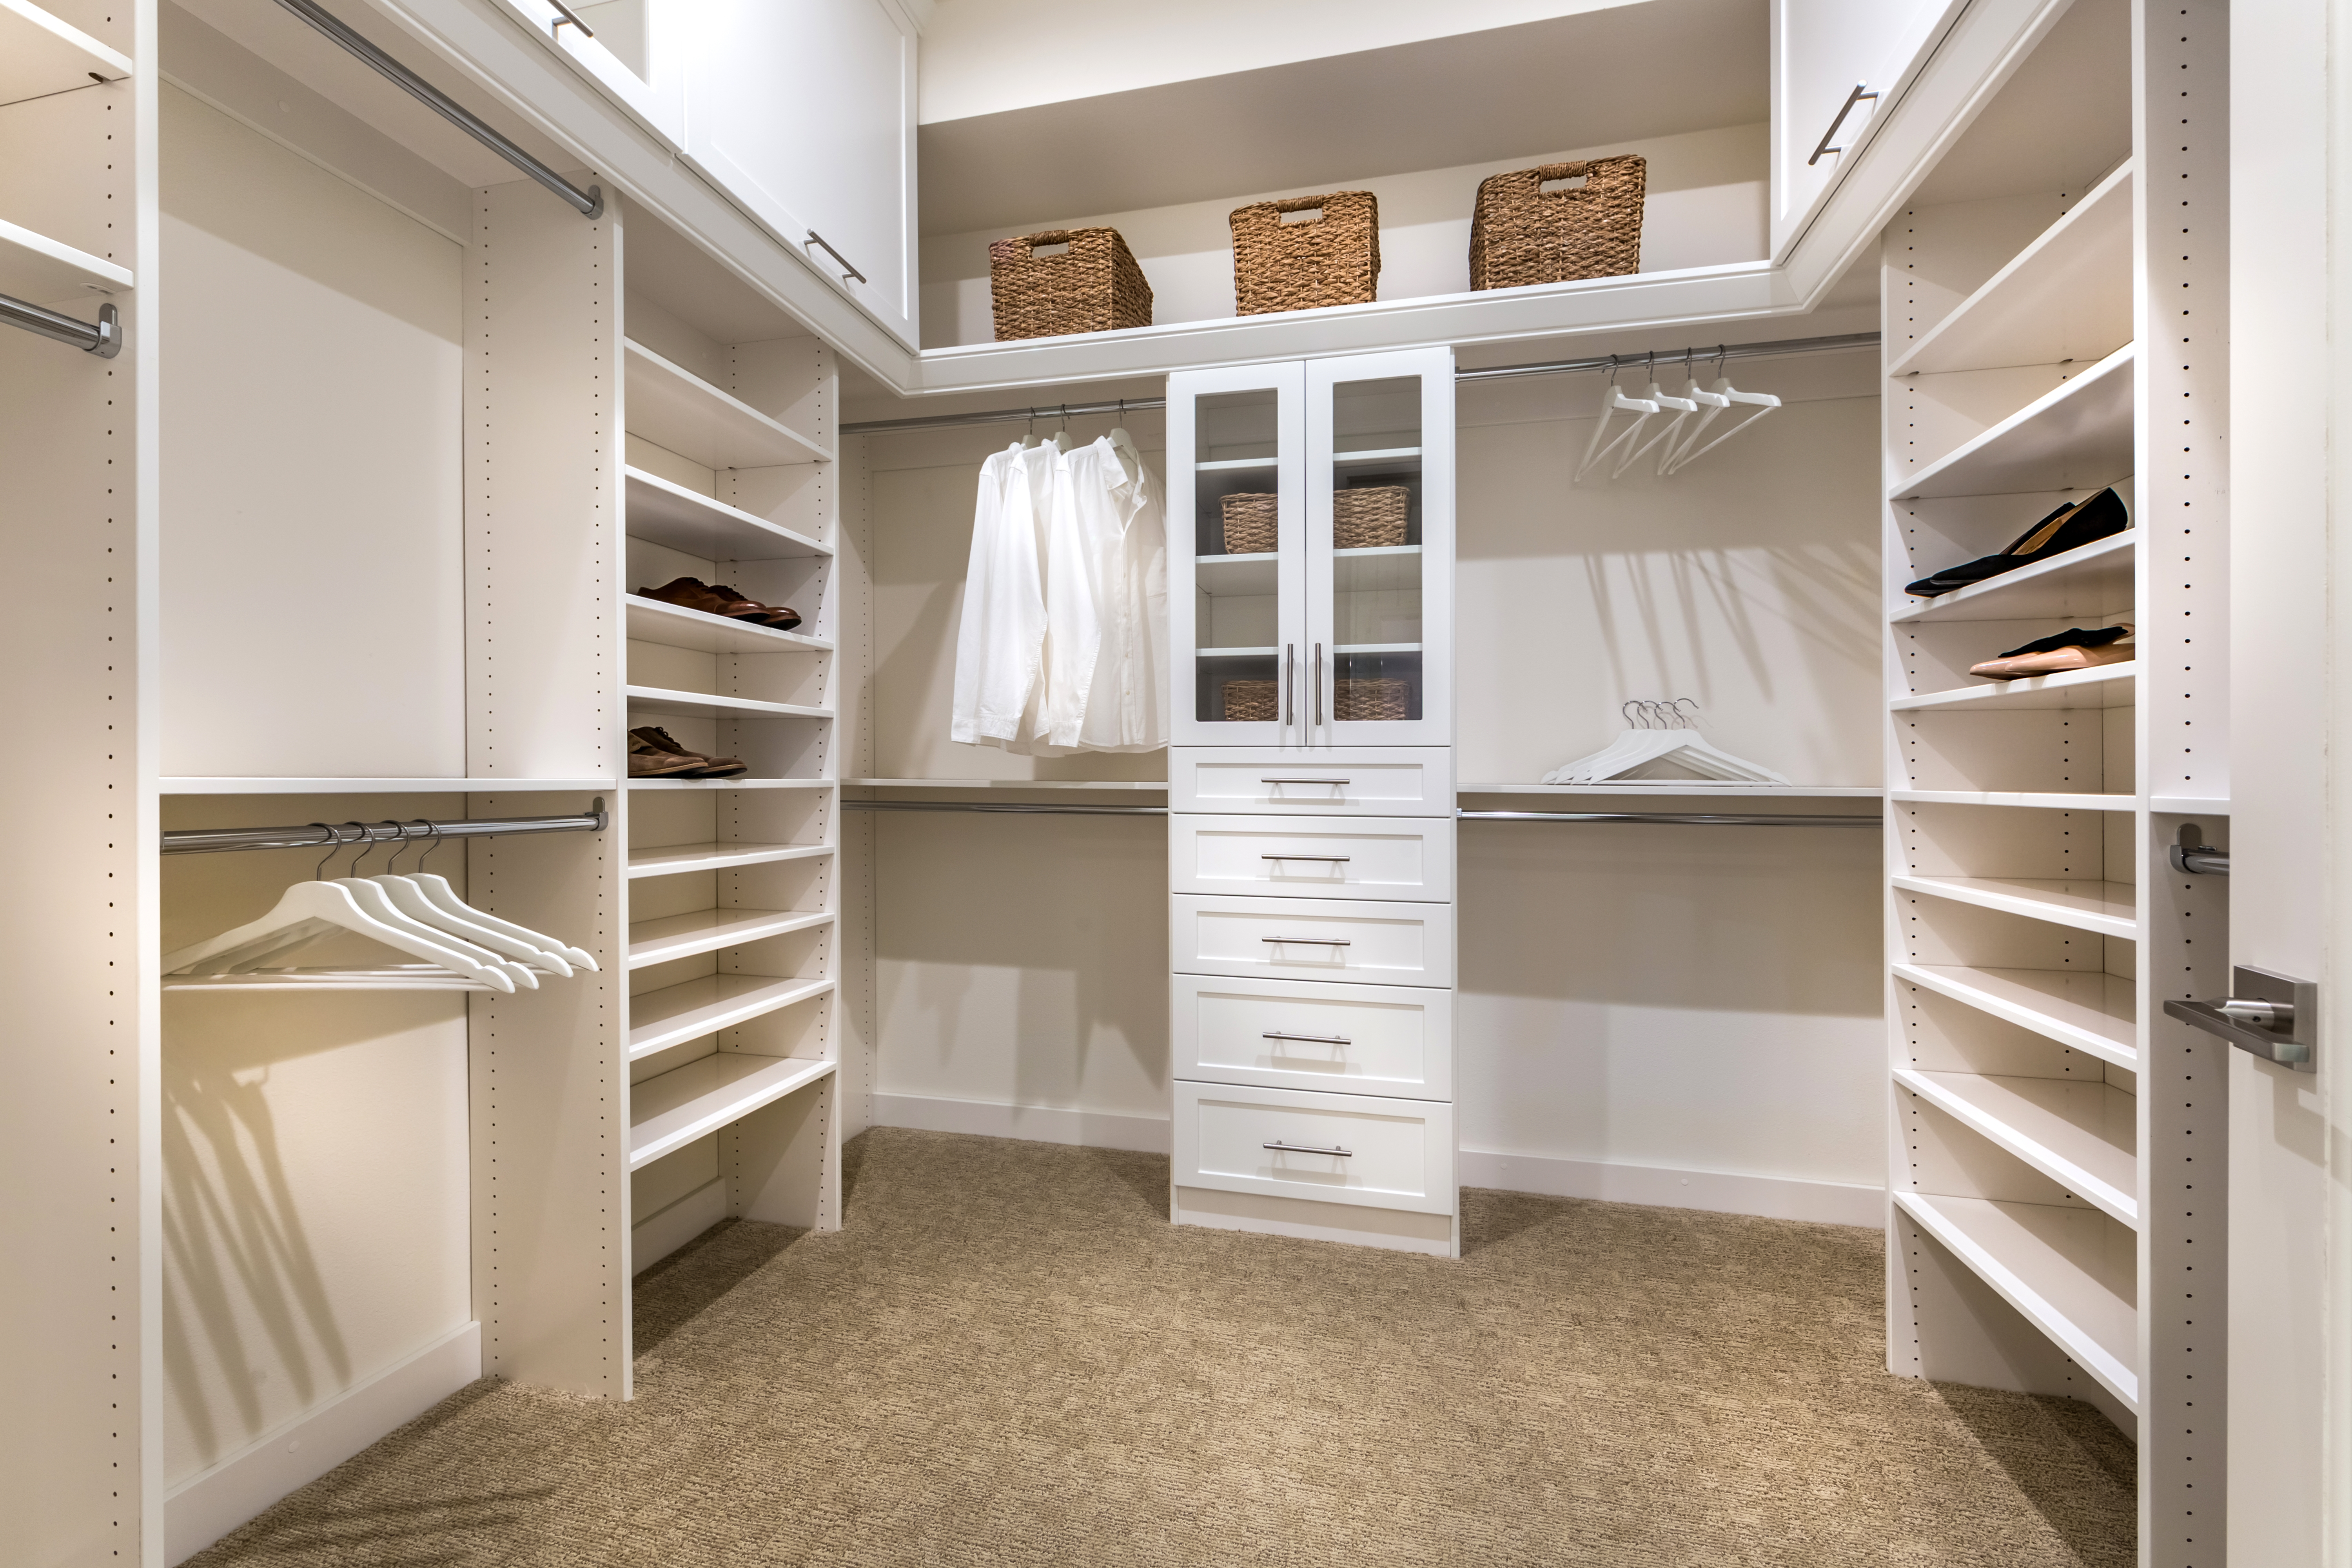 Master Closet at Verdi Residence 1 in Irvine